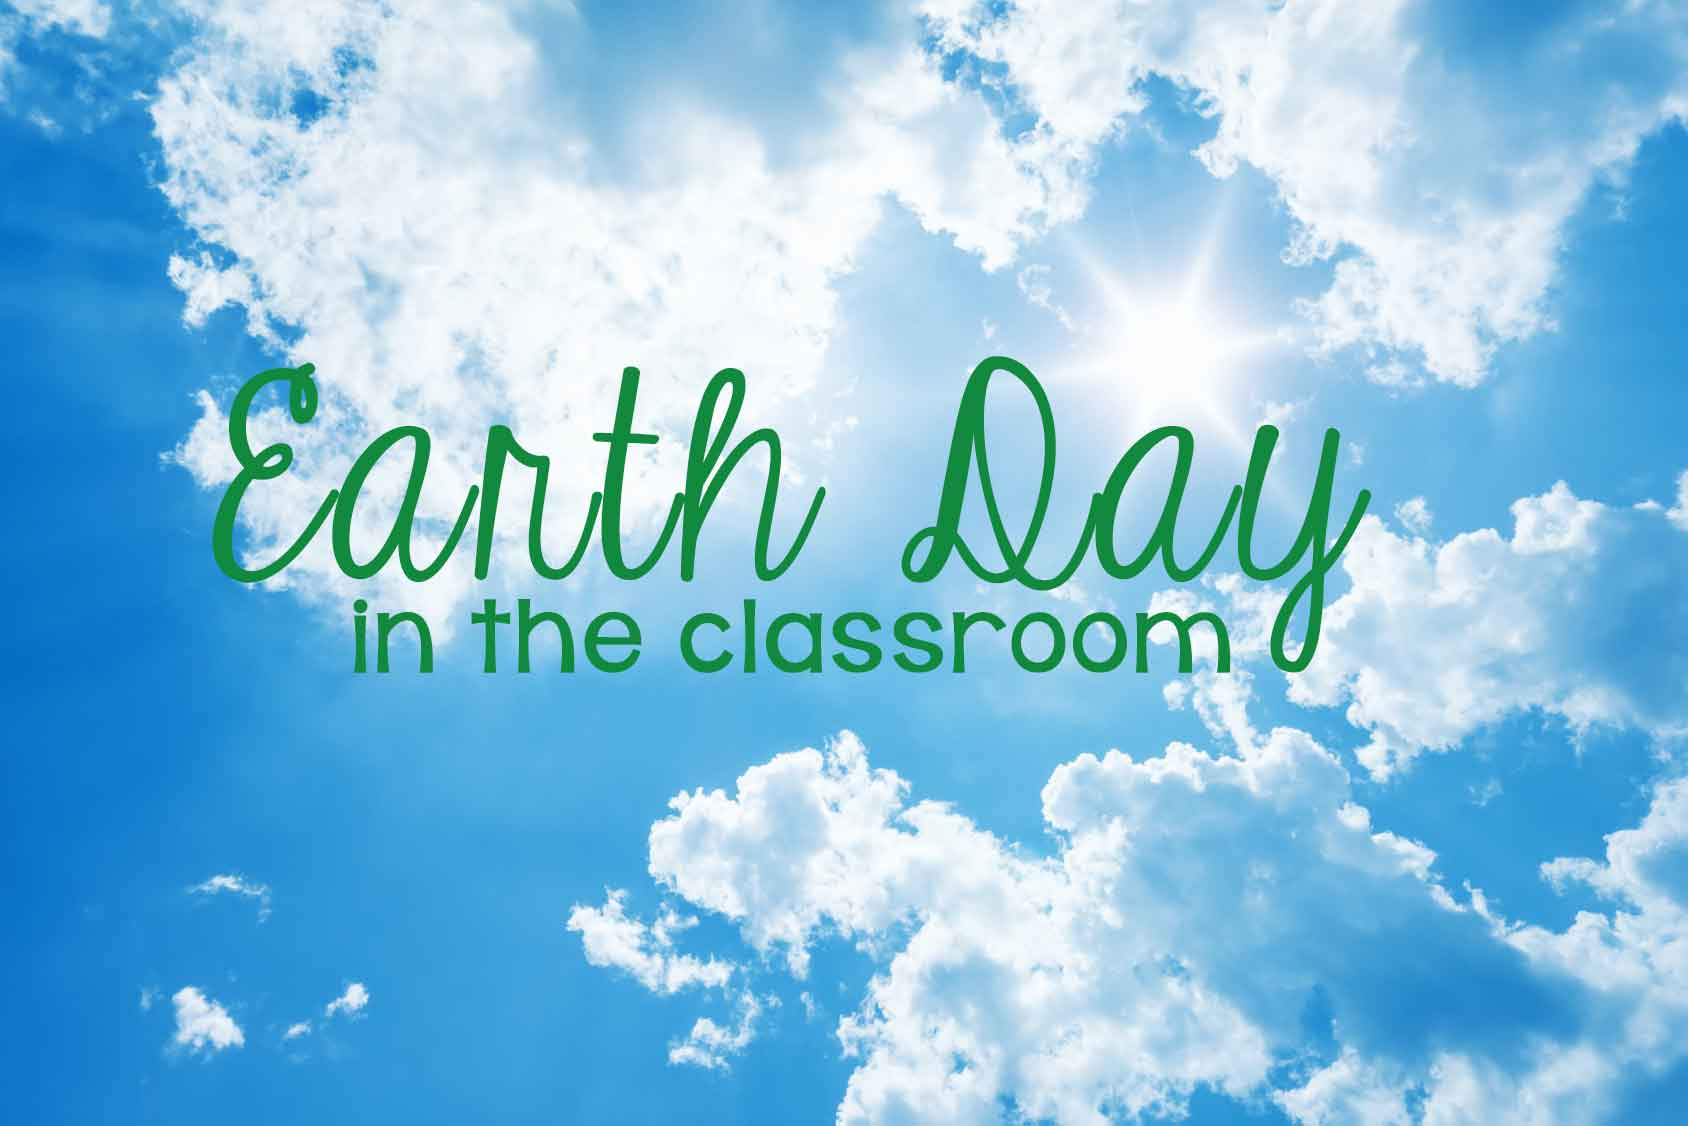 Earth-Day-in-the-classroom